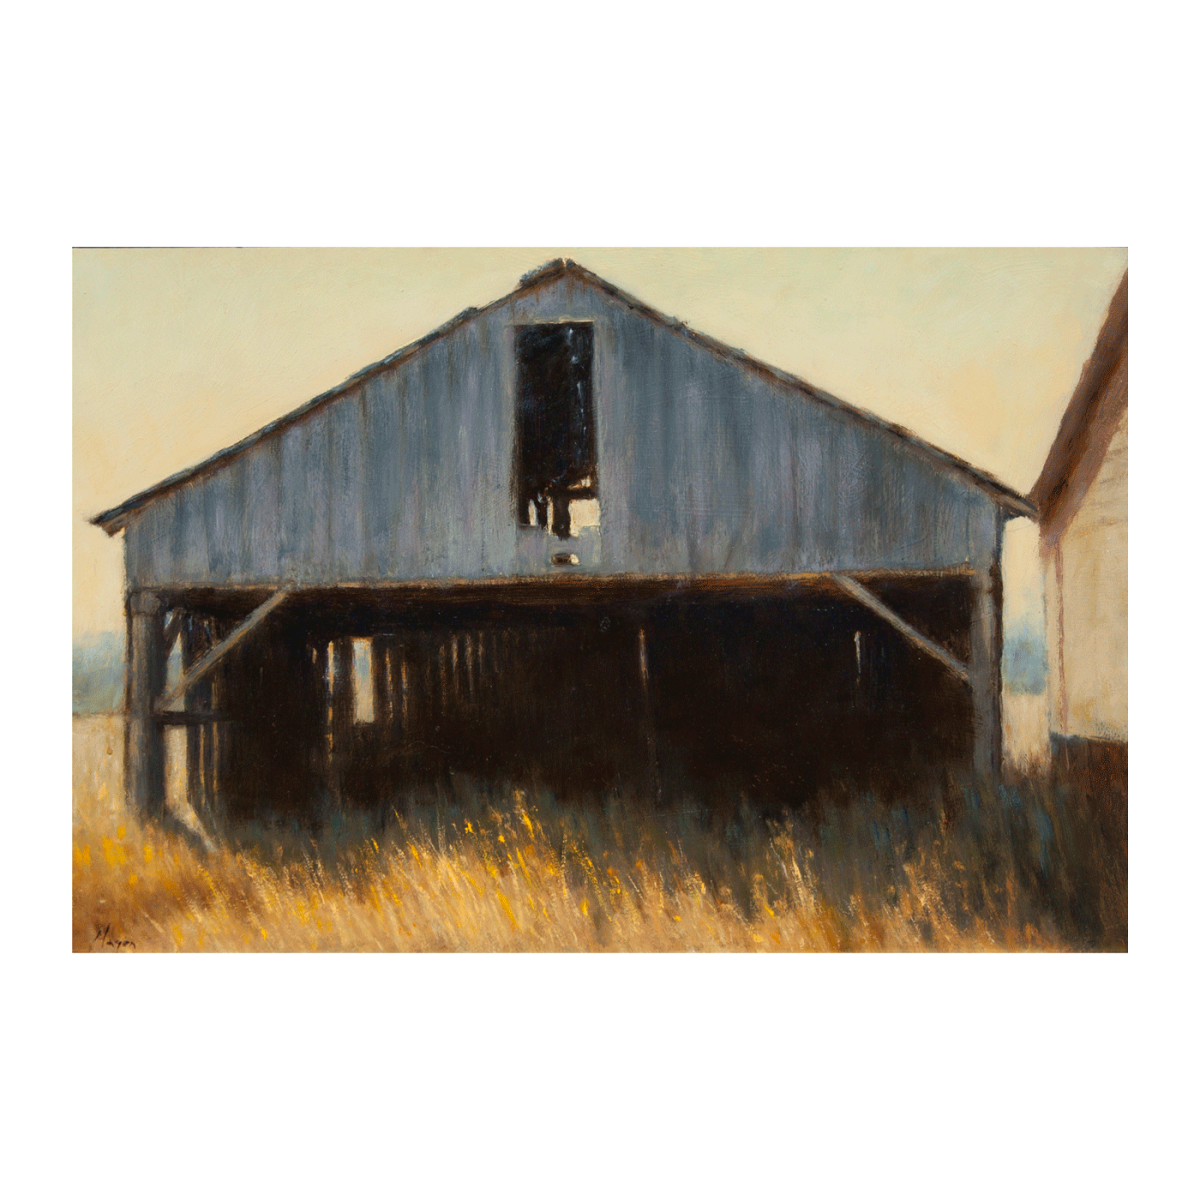 Vacant painting of a barn by Peter Hagen